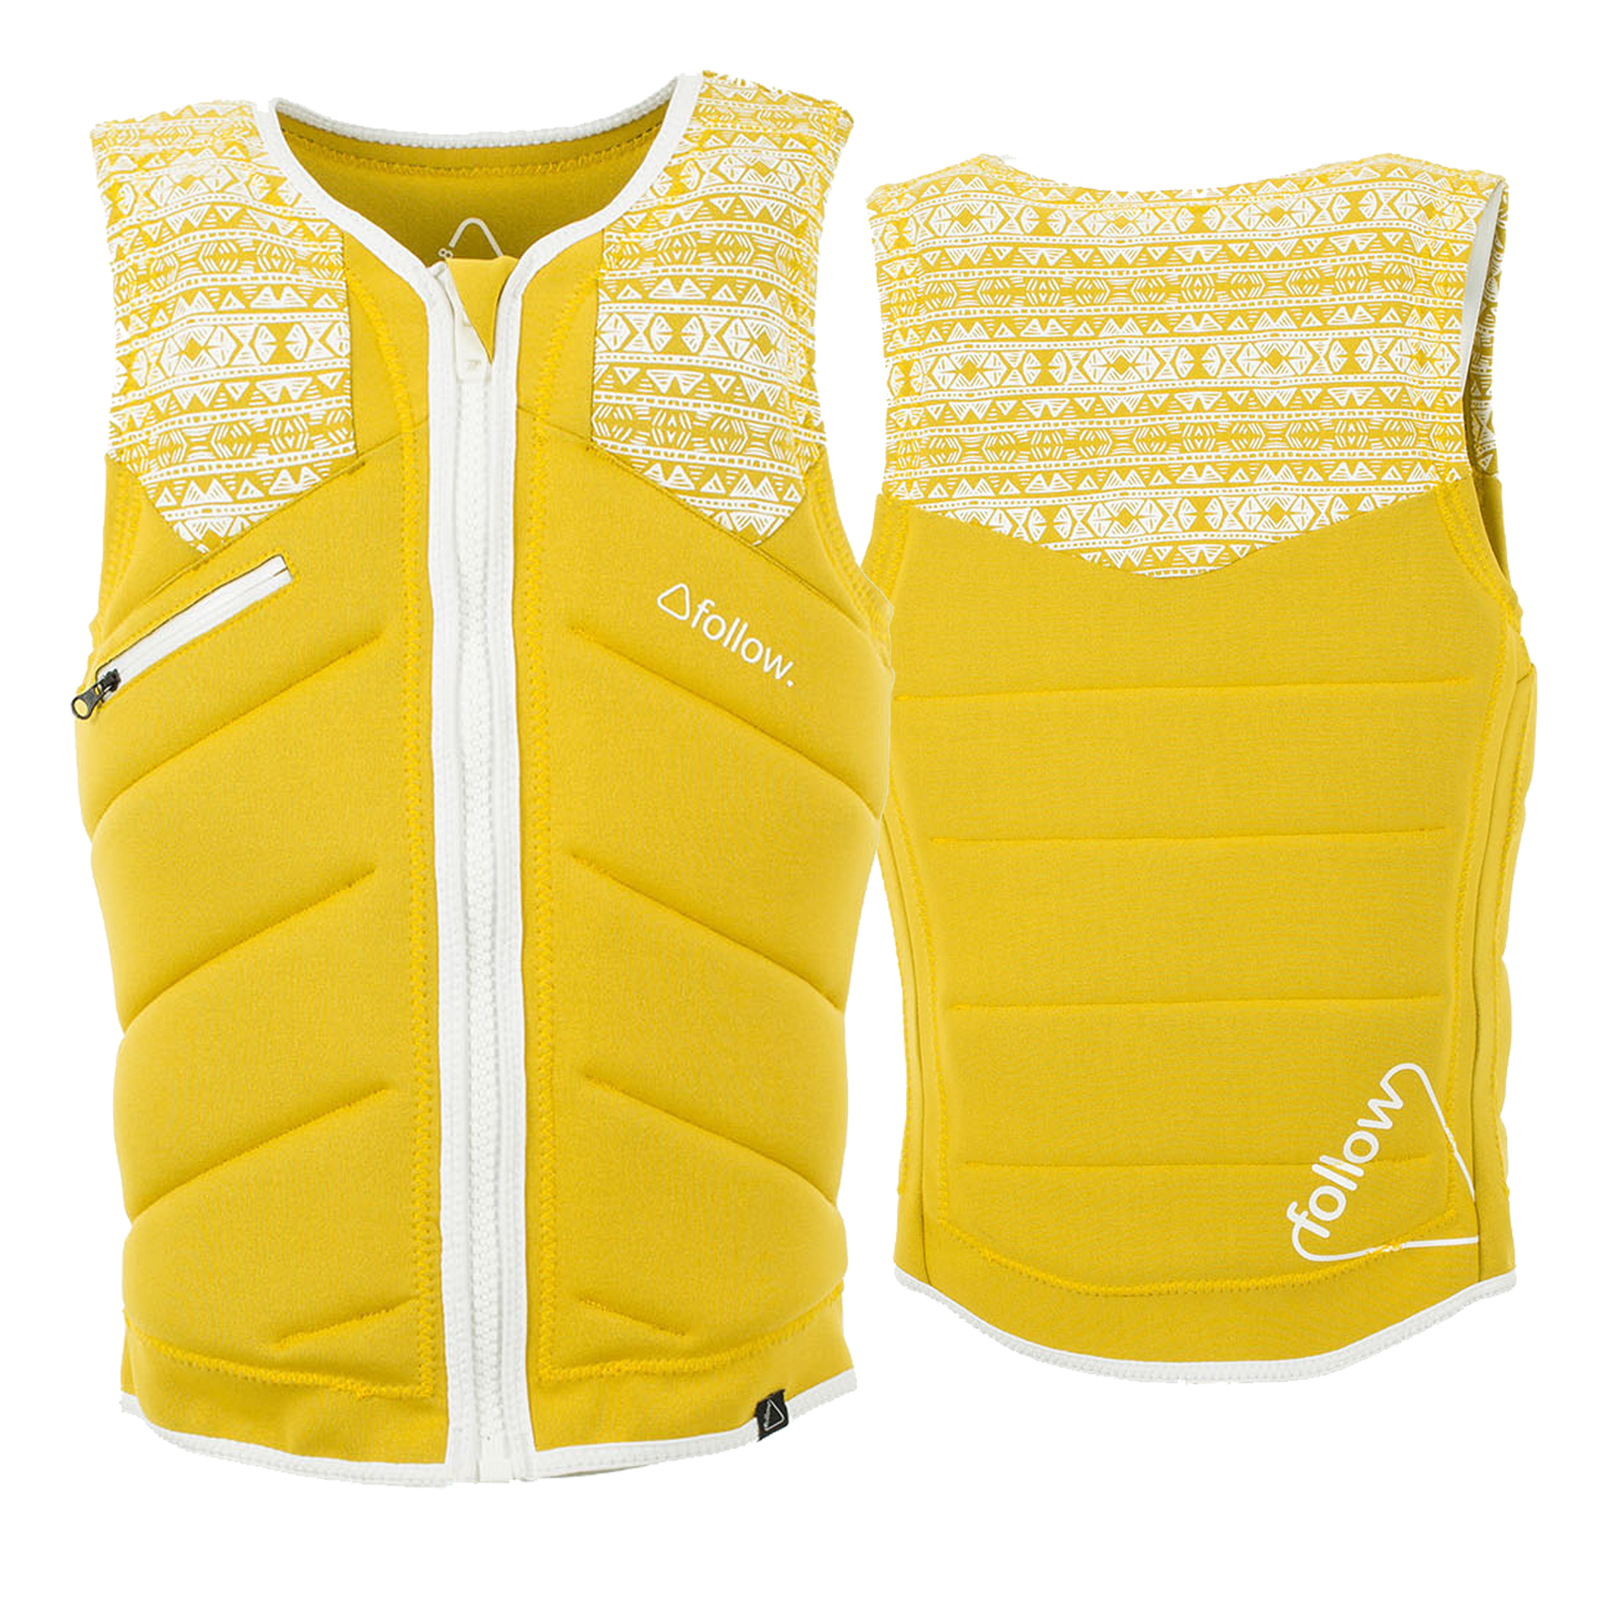 LACE PRO LADIES IMPACT VEST - MUSTARD FOLLOW 2017